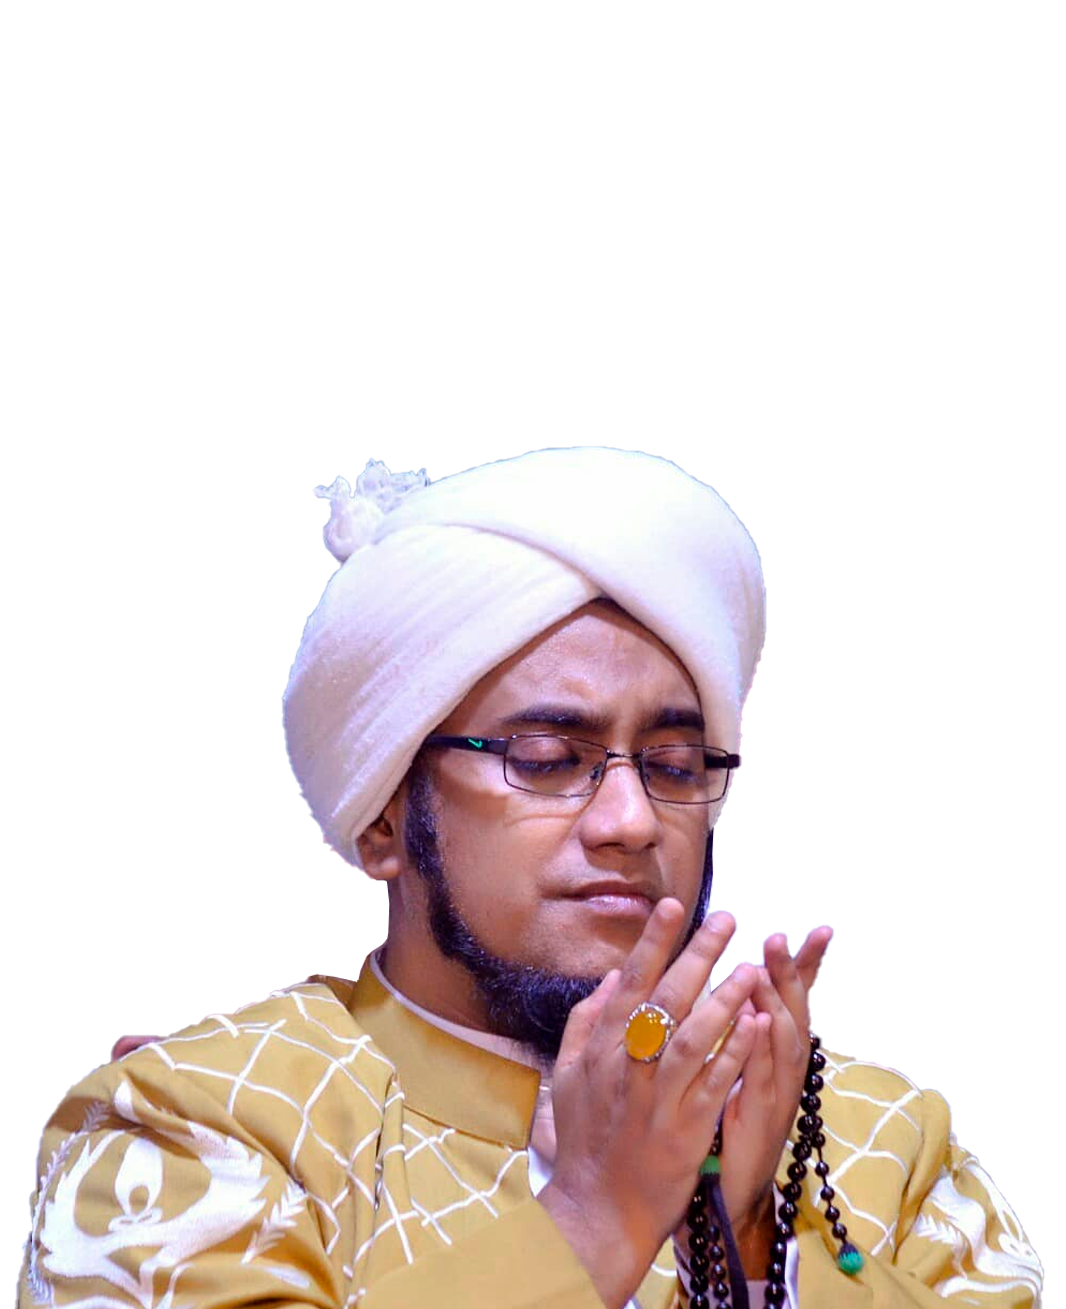 Download Wallpaper PNG Habib Hasan 009